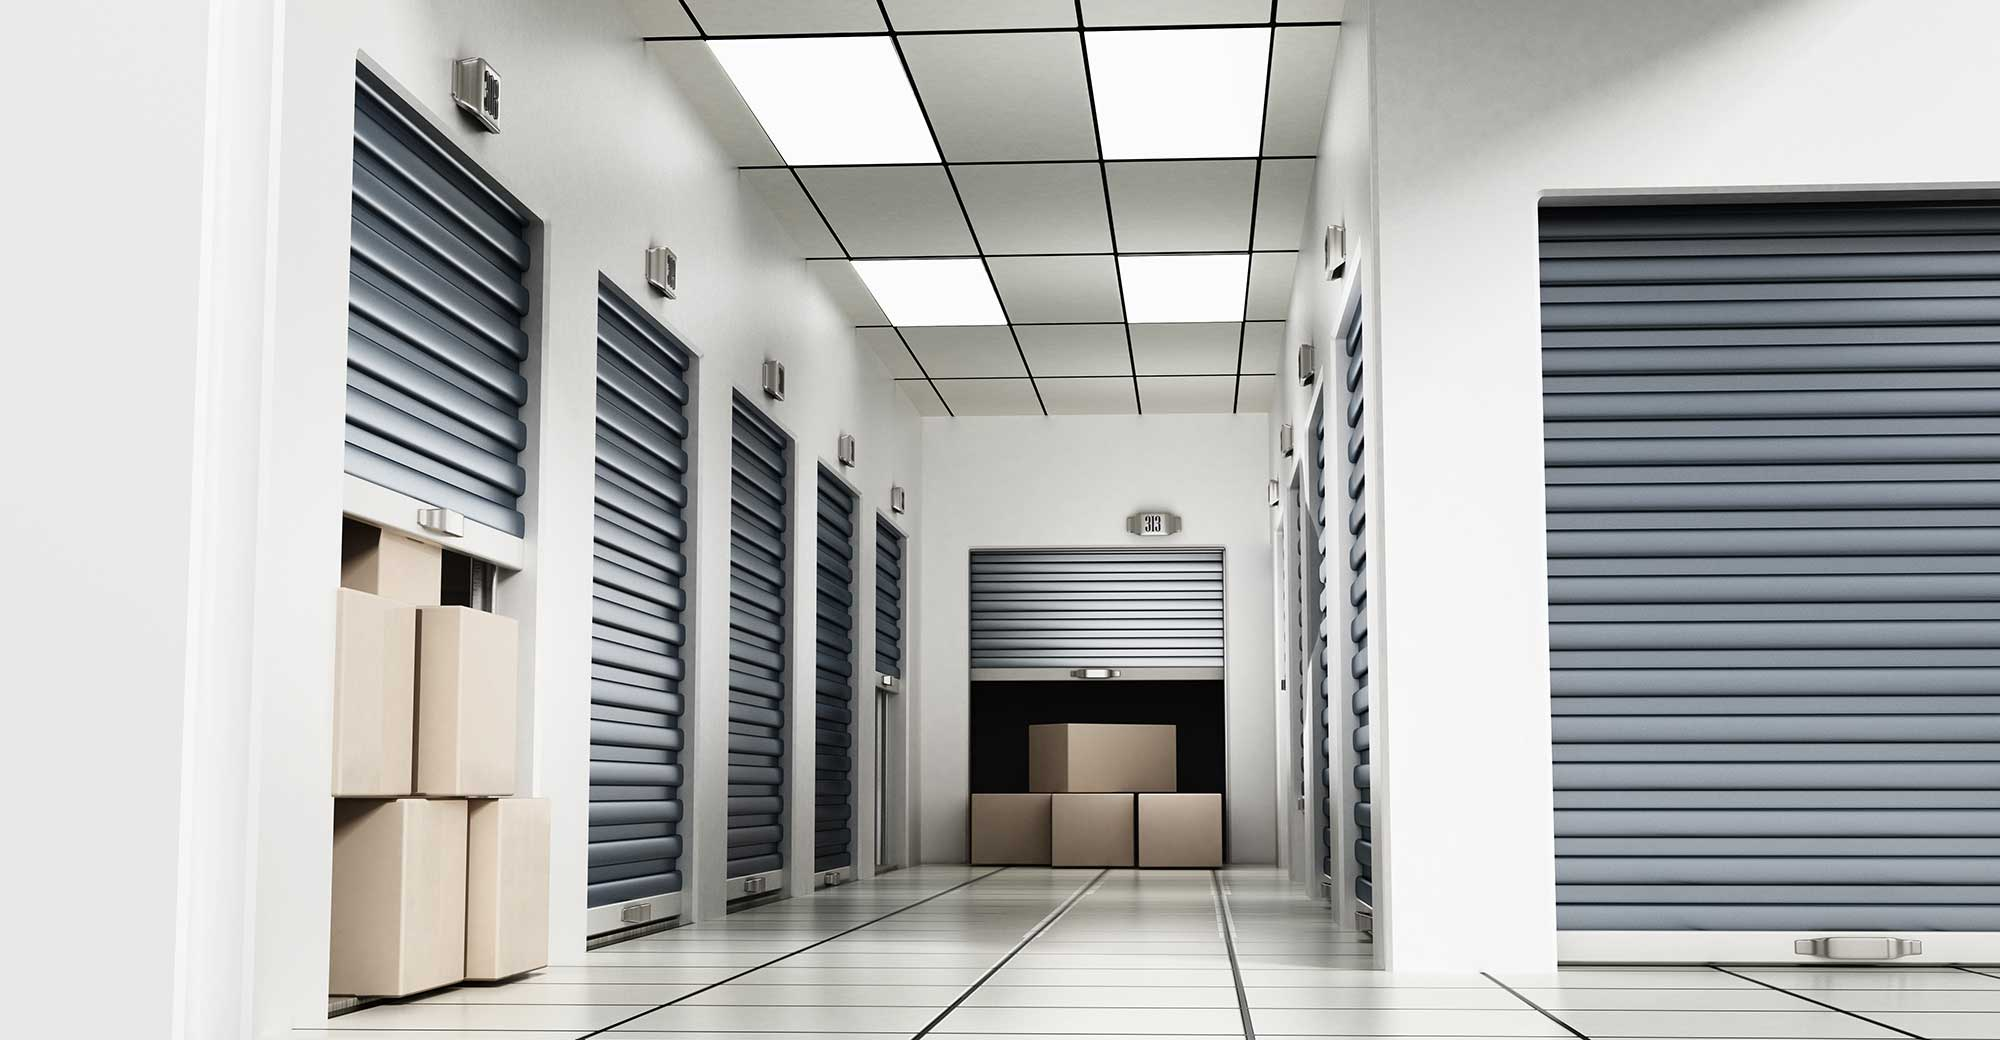 Access here alternative investment news about Brookfield Looking At Selling Simply Self Storage For $1.3B | National Real Estate Investor